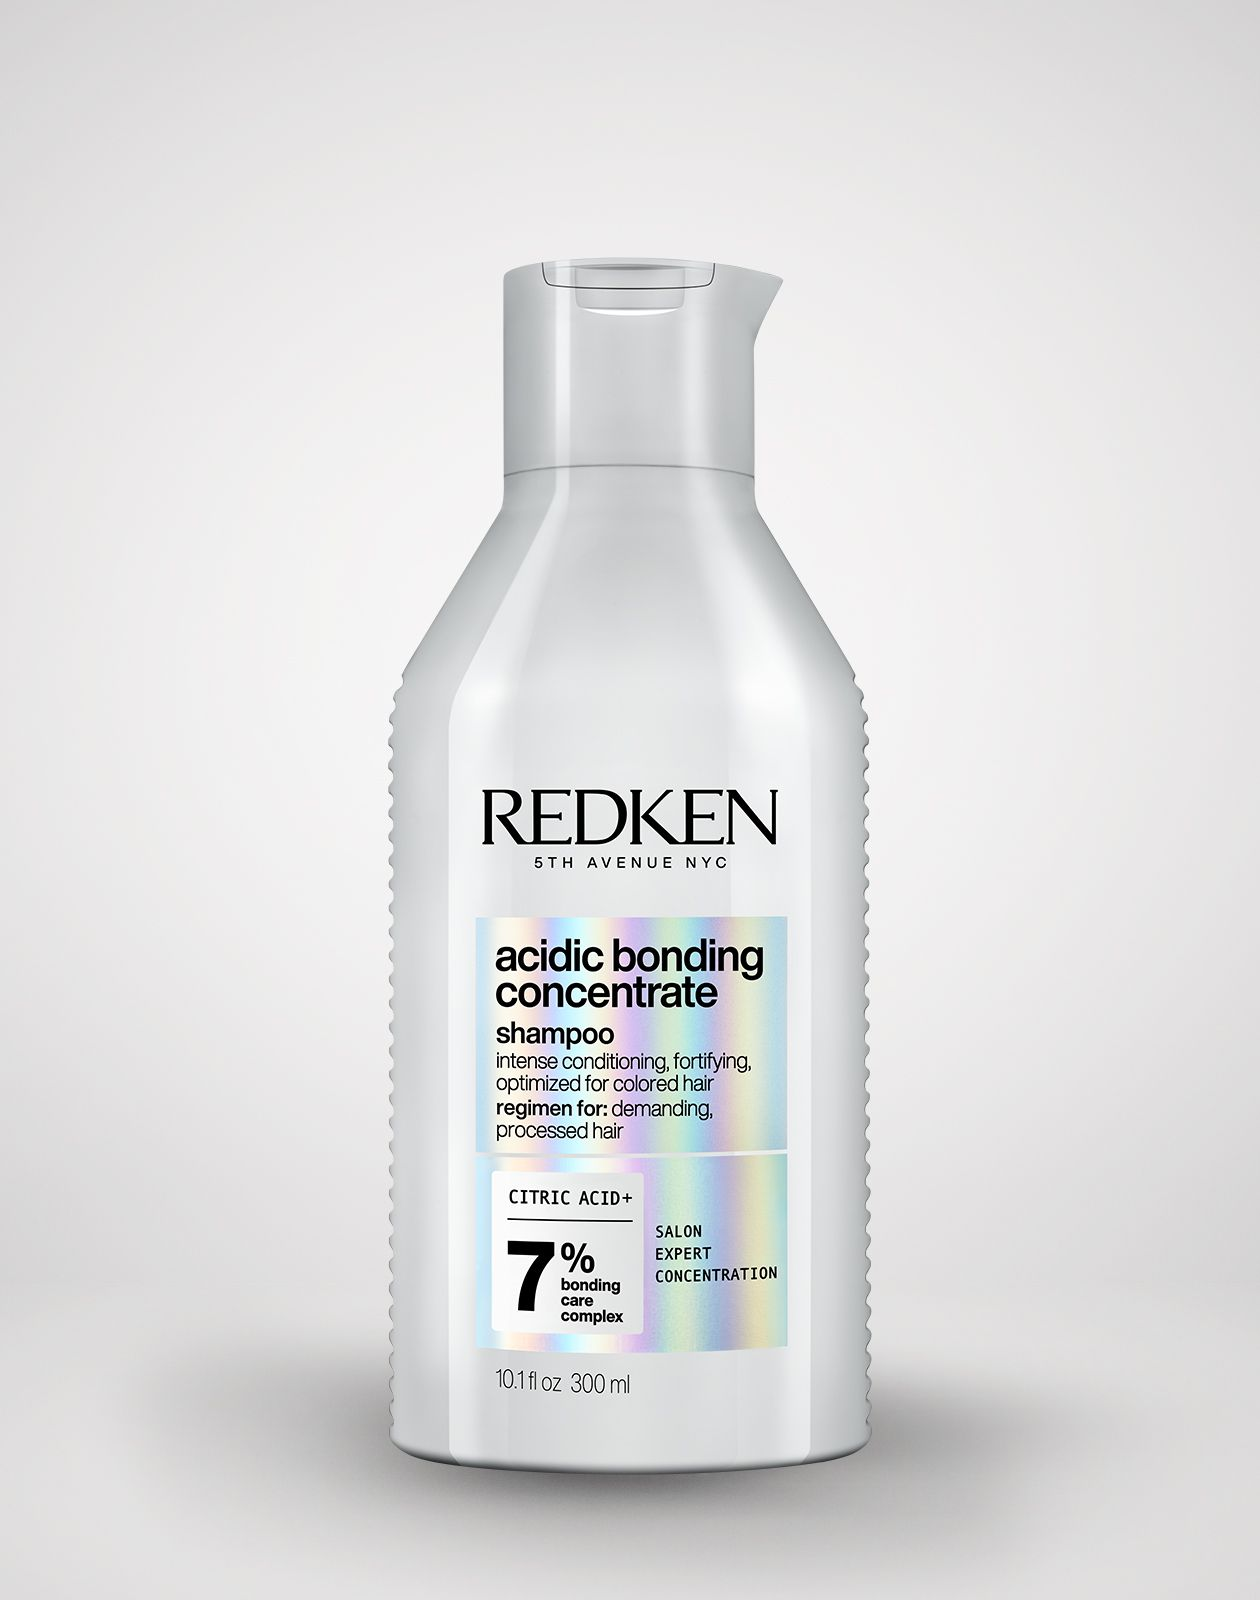 ACIDIC BONDING CONCENTRATE SHAMPOO FOR DAMAGED HAIR